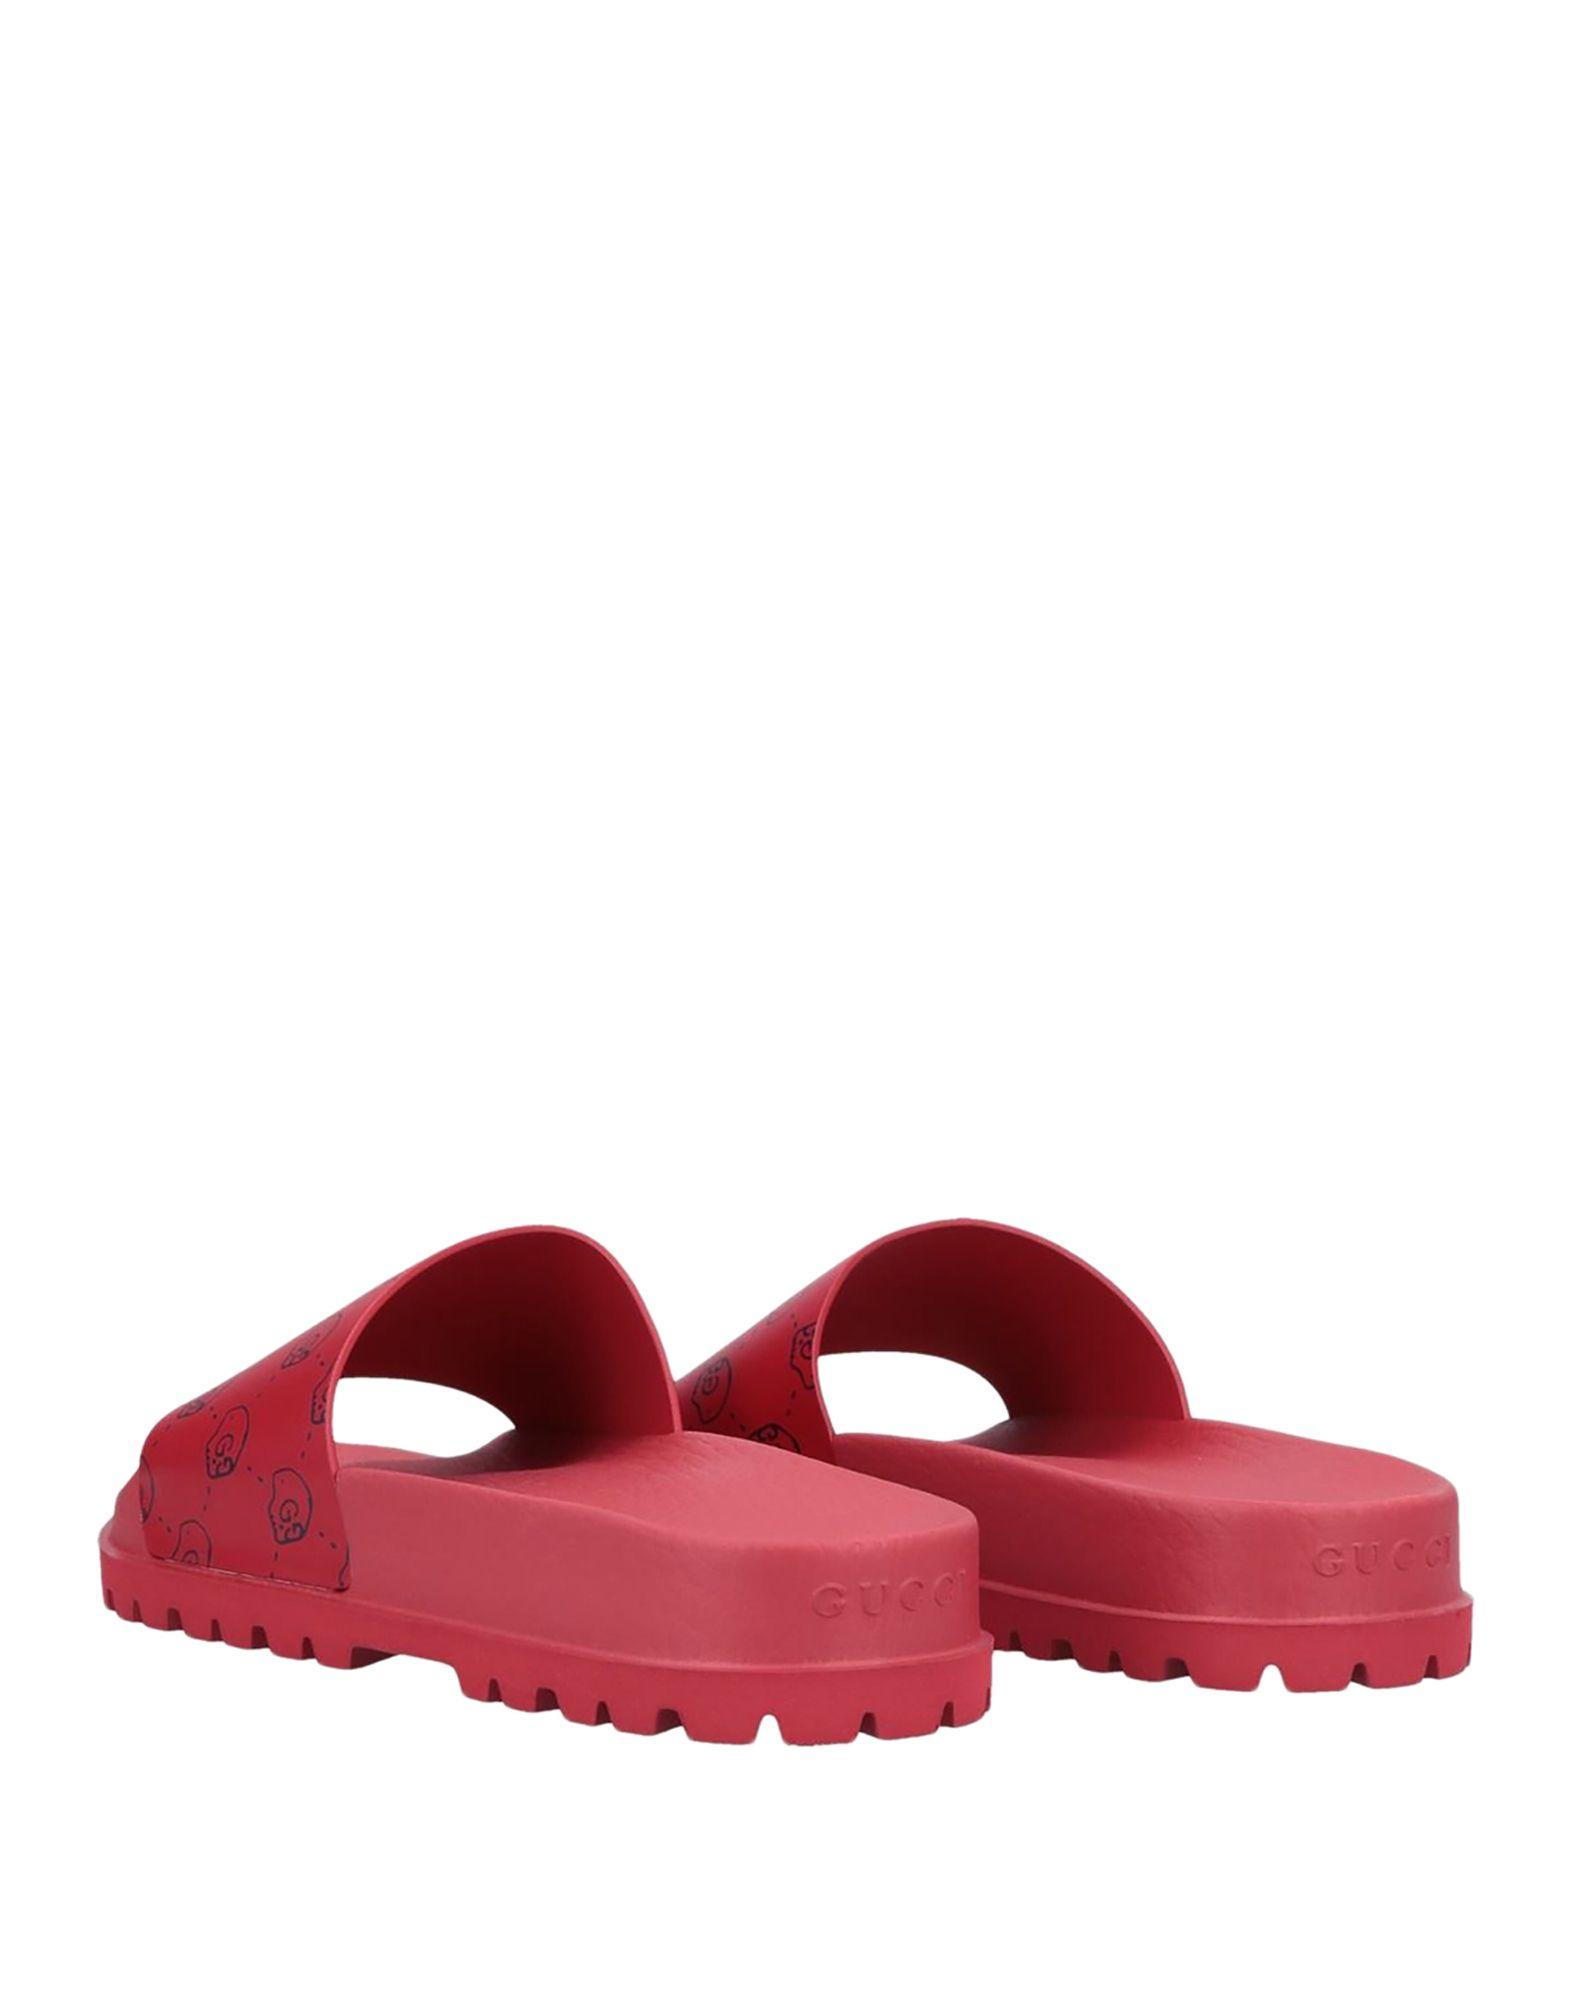 23b72d572e9ed6 Gucci - Red Sandals for Men - Lyst. View fullscreen